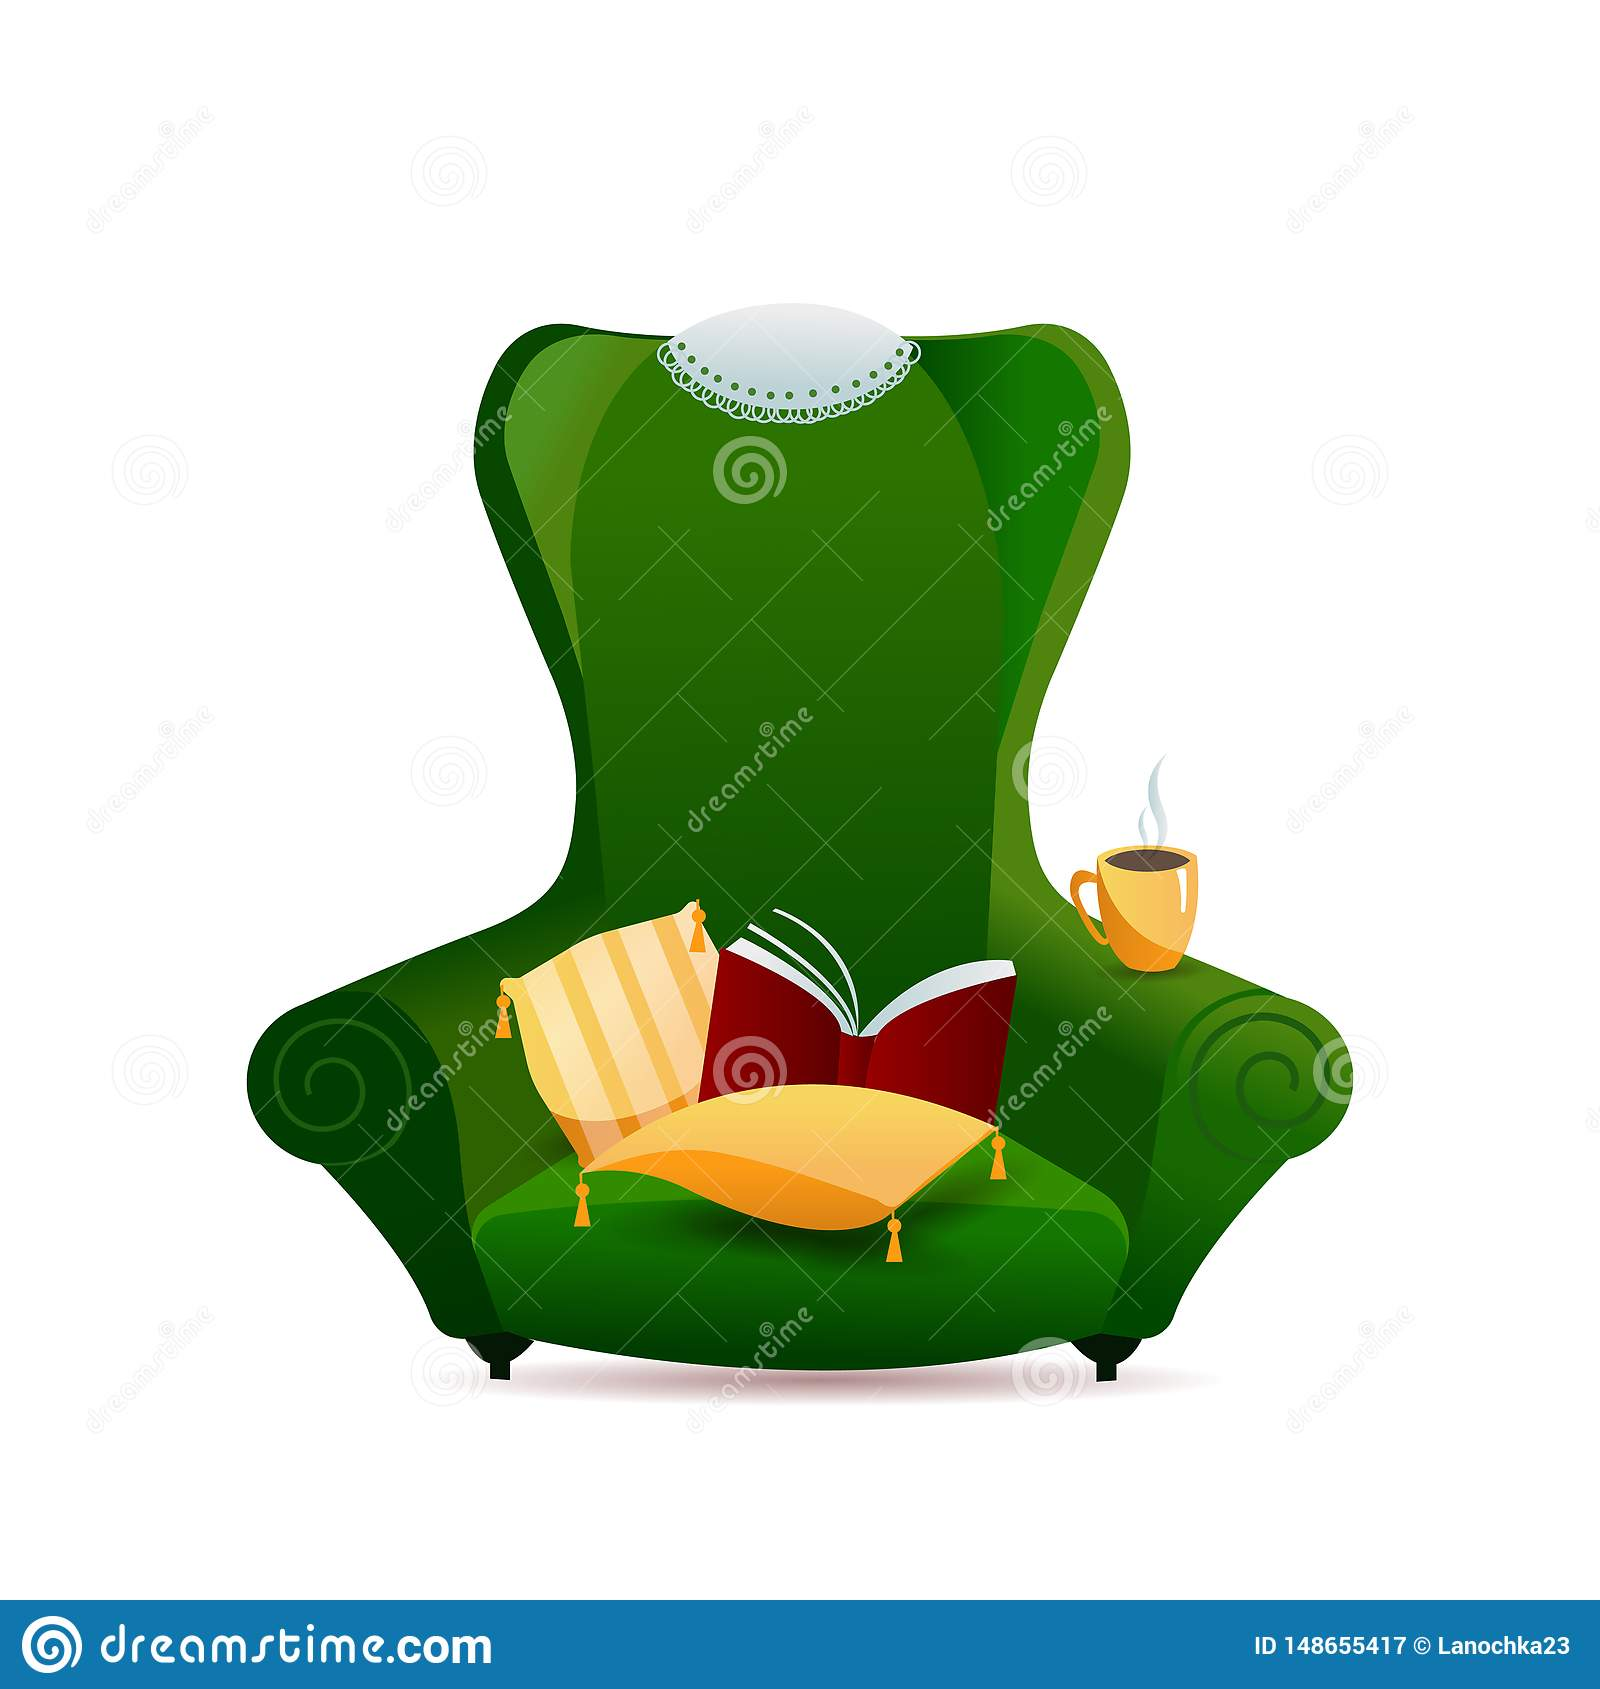 Green vintage sofa armchair with gold pillow with tassels and lace napkin on back of chair on white background. Gradient